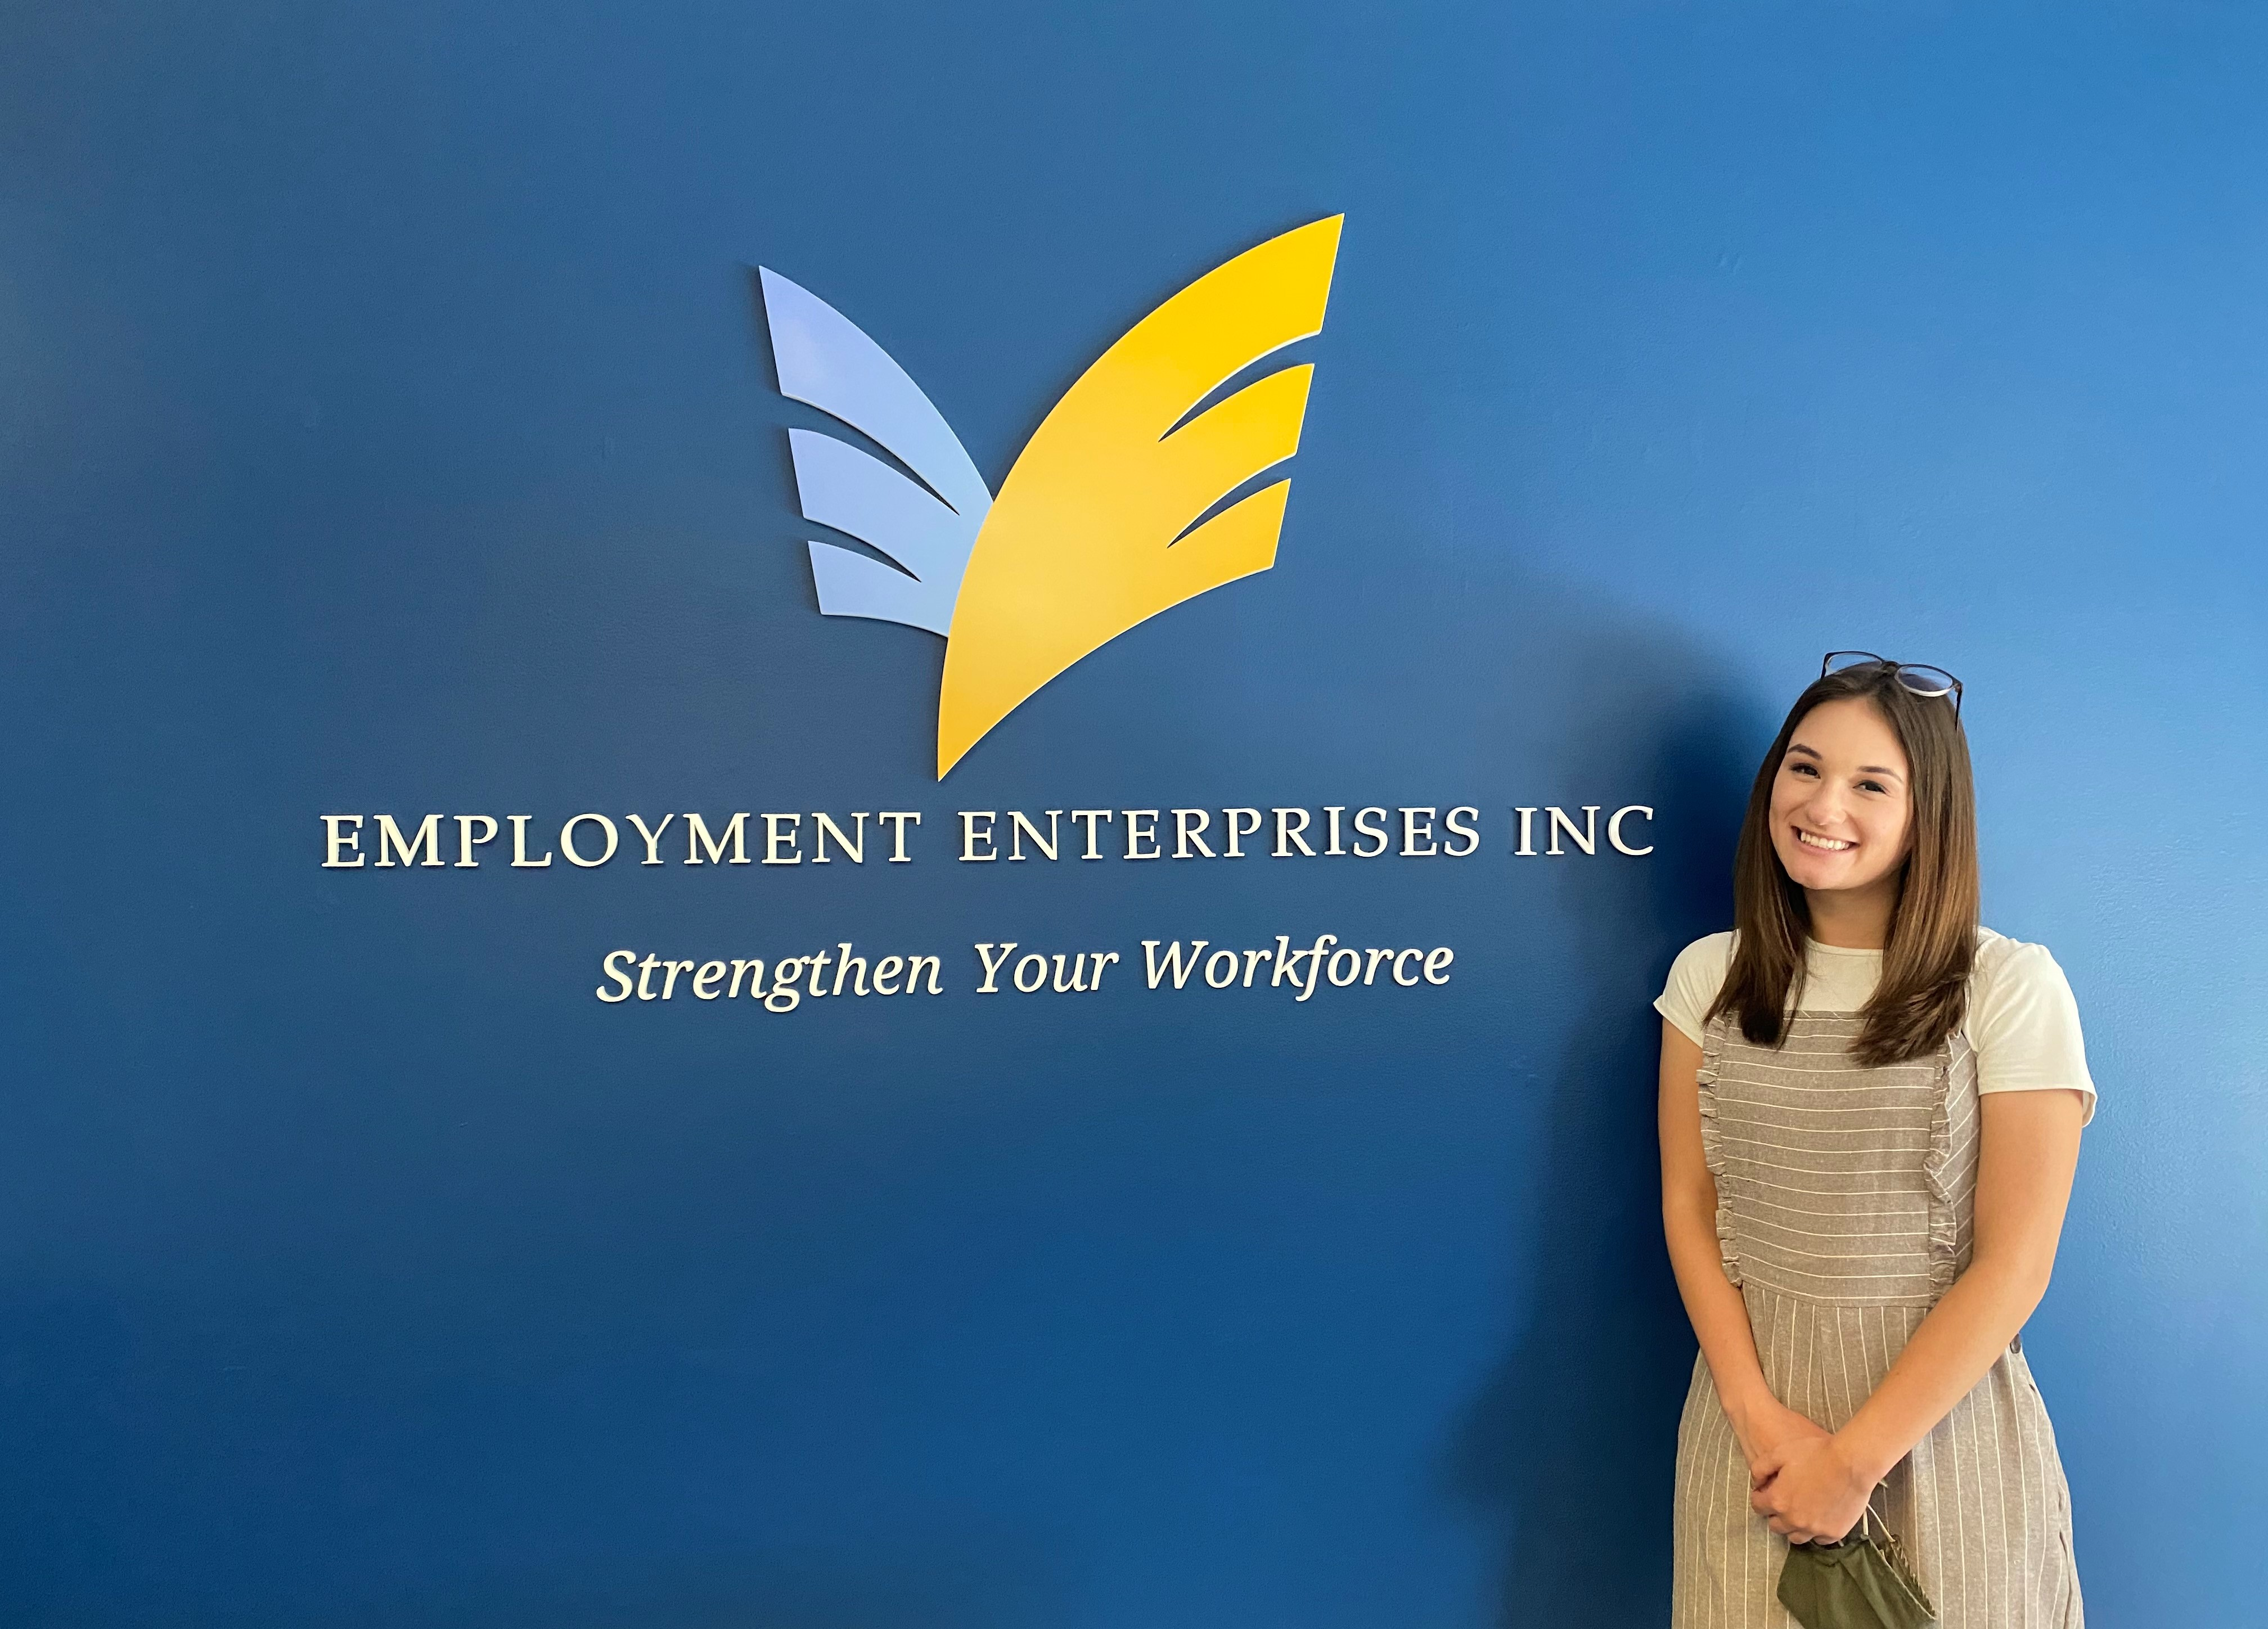 Sadie smiling in front of an Employment Enterprises, Inc. sign